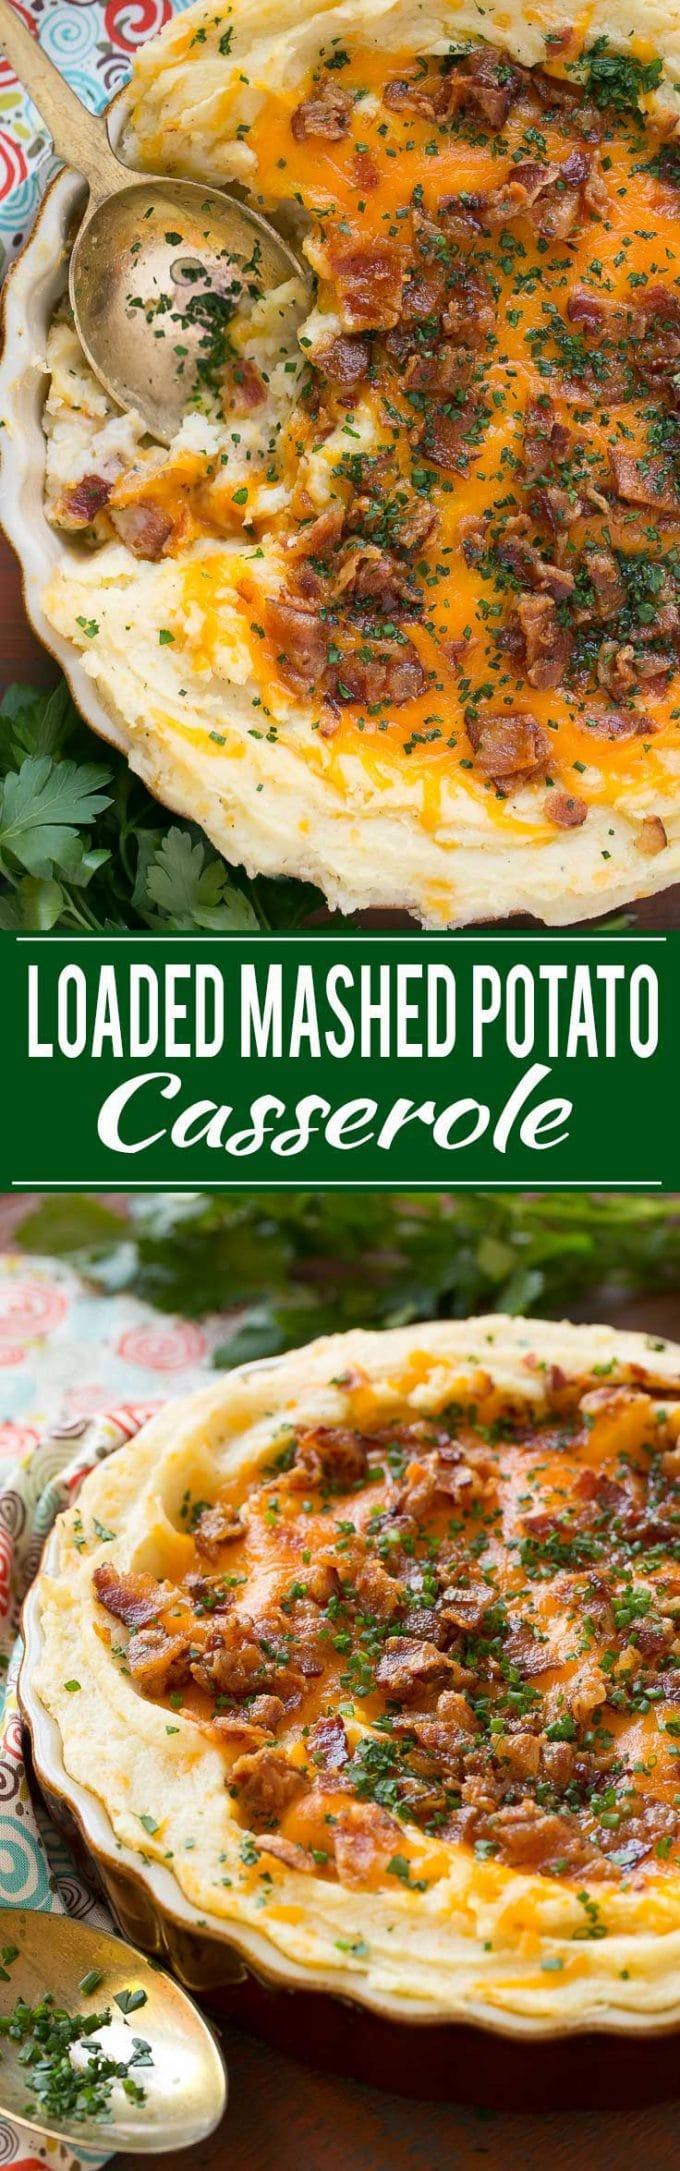 Loaded Mashed Potato Casserole Recipe | Loaded Mashed Potatoes | Mashed Potatoes with Baked Potato Toppings | Best Mashed Potato Casserole